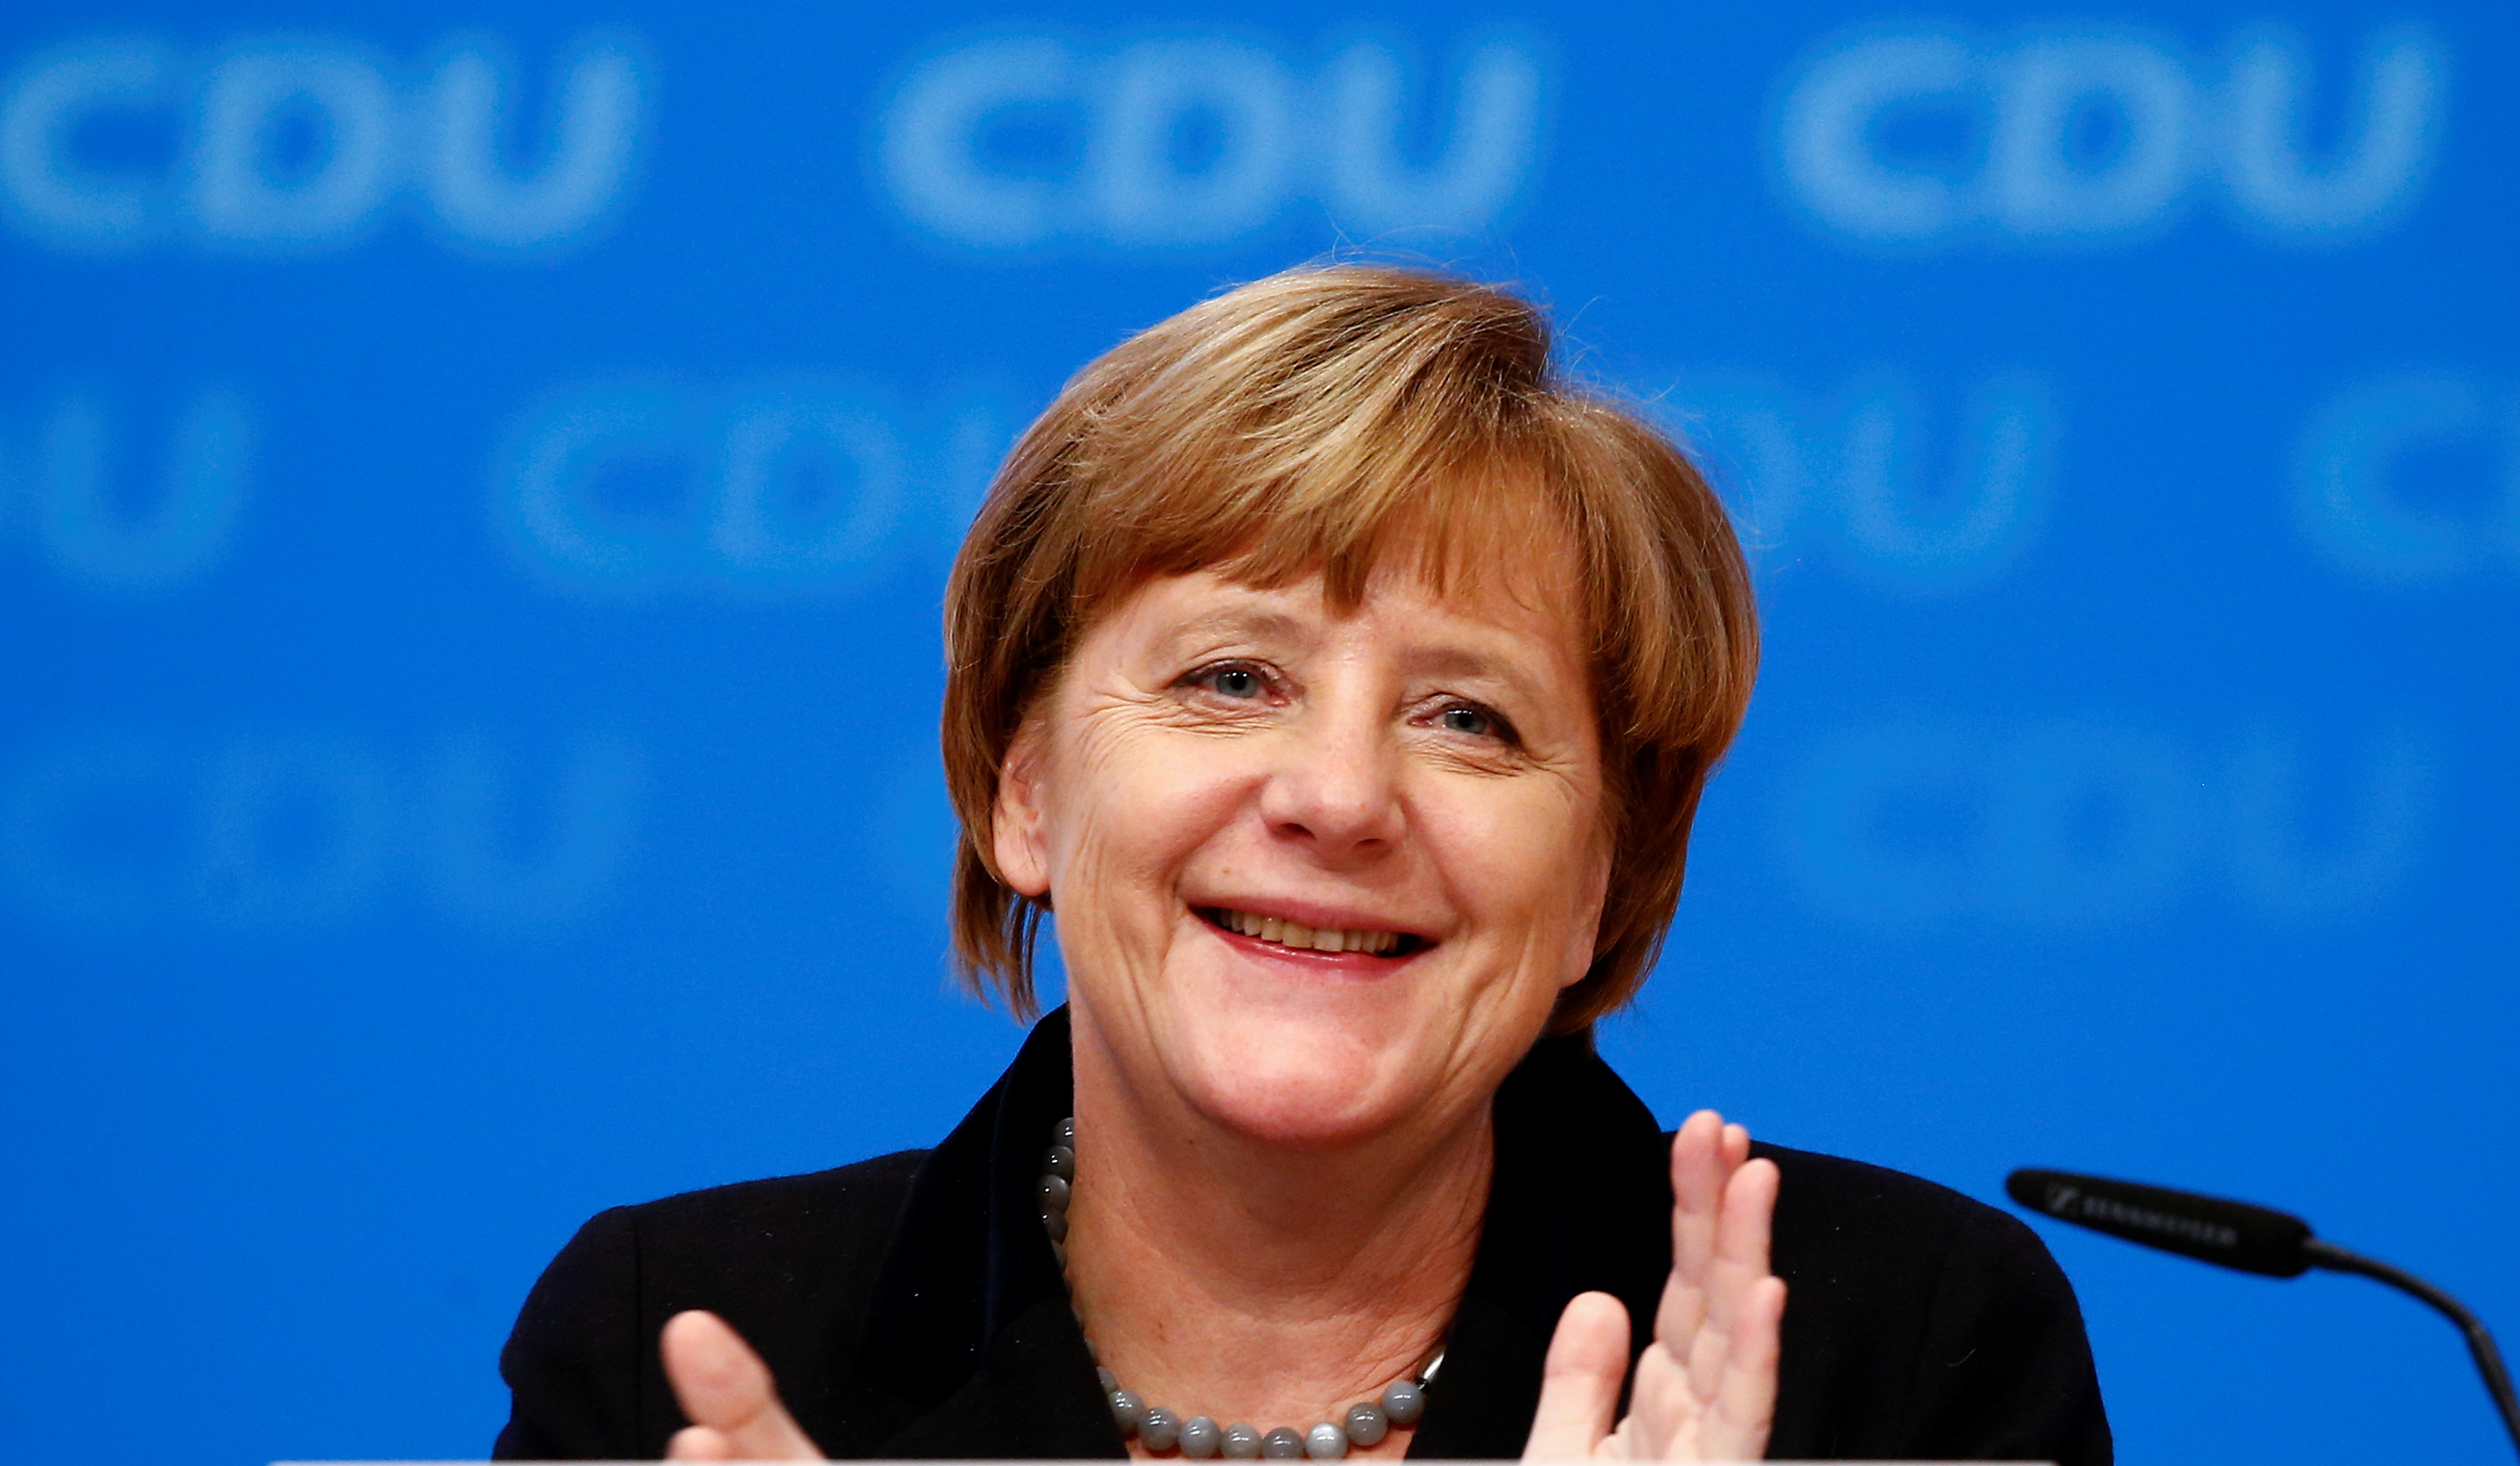 German Chancellor and leader of the Christian Democratic Union (CDU) Angela Merkel applauds after the overwhelming vote on a declaration about refugees during the CDU party congress in Karlsruhe, Germany December 14, 2015. REUTERS/Kai Pfaffenbach